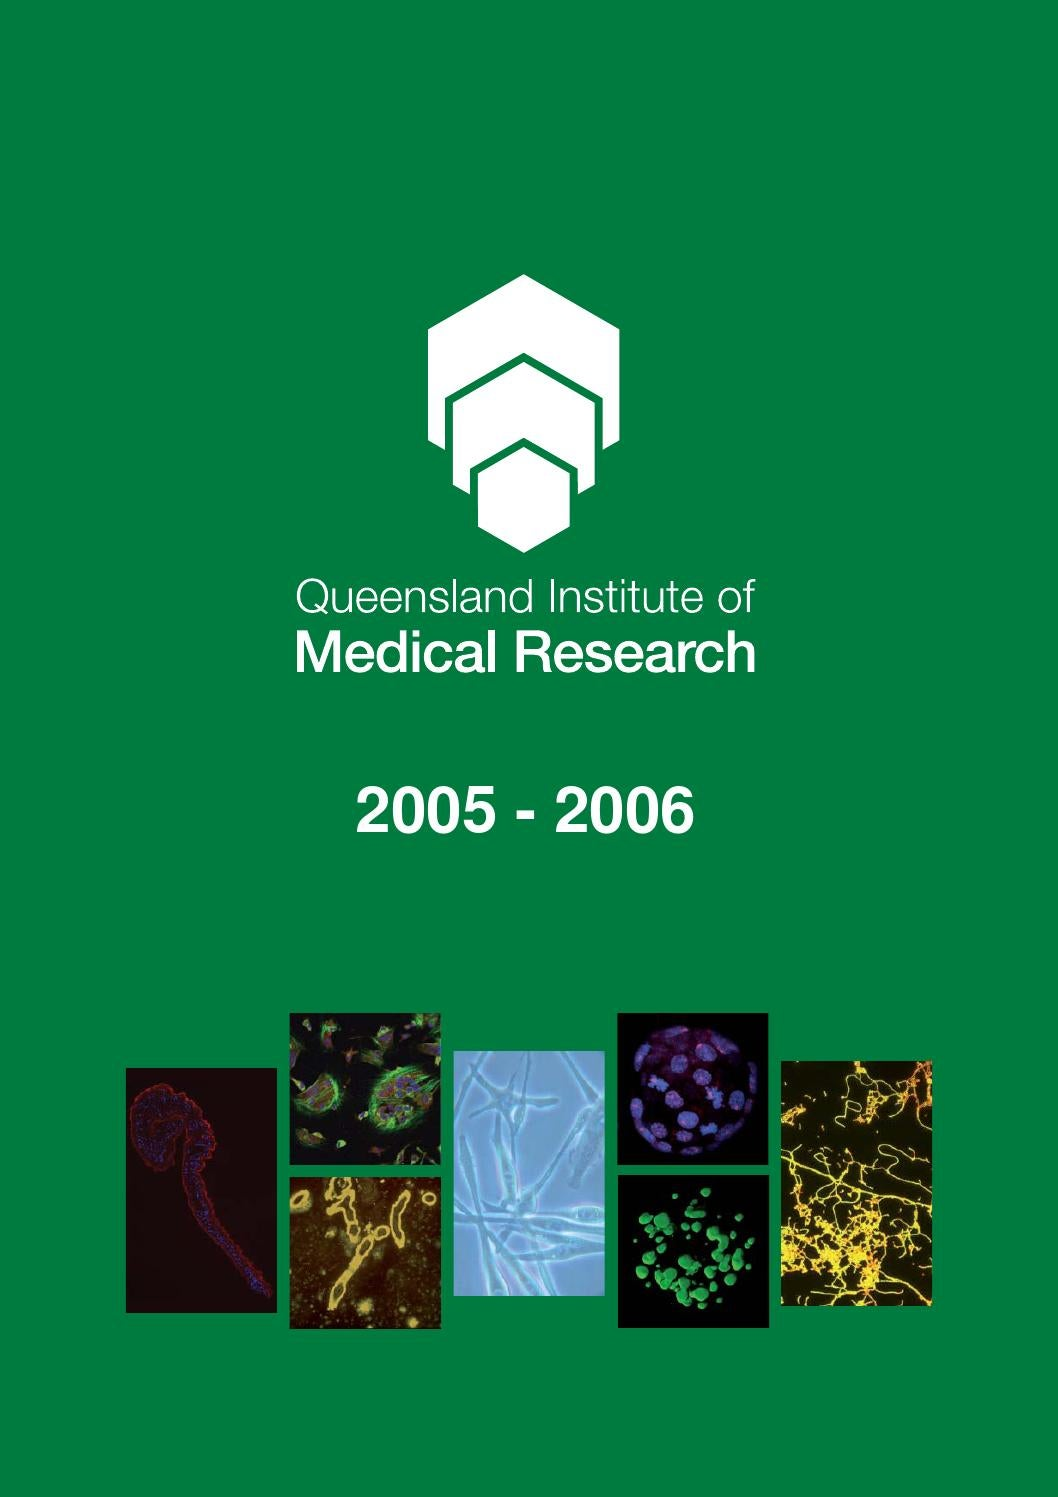 qimr annual report 20052006 by qimr berghofer medical